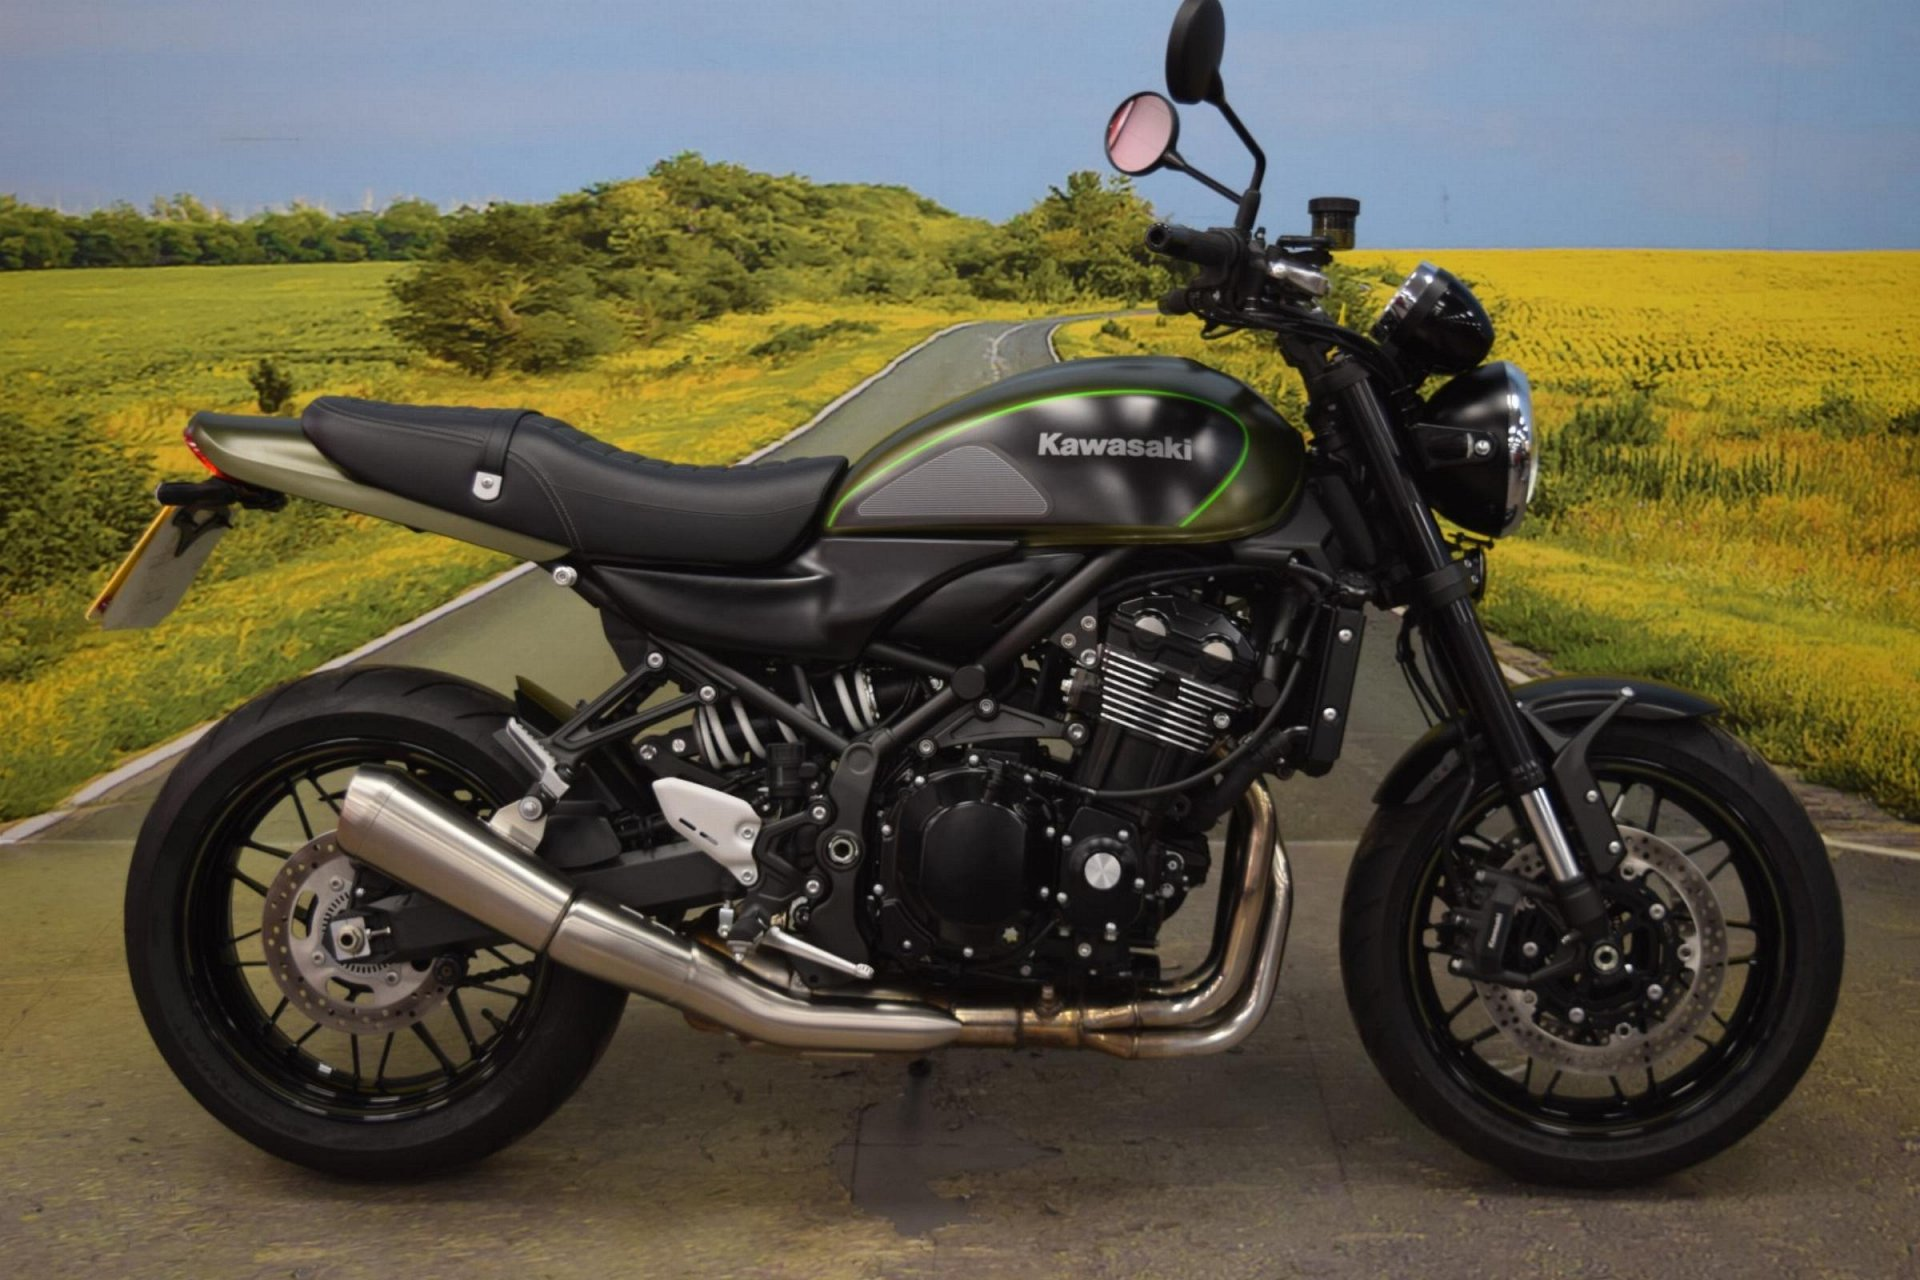 2018 Kawasaki Z900 RS for sale in Staffordshire